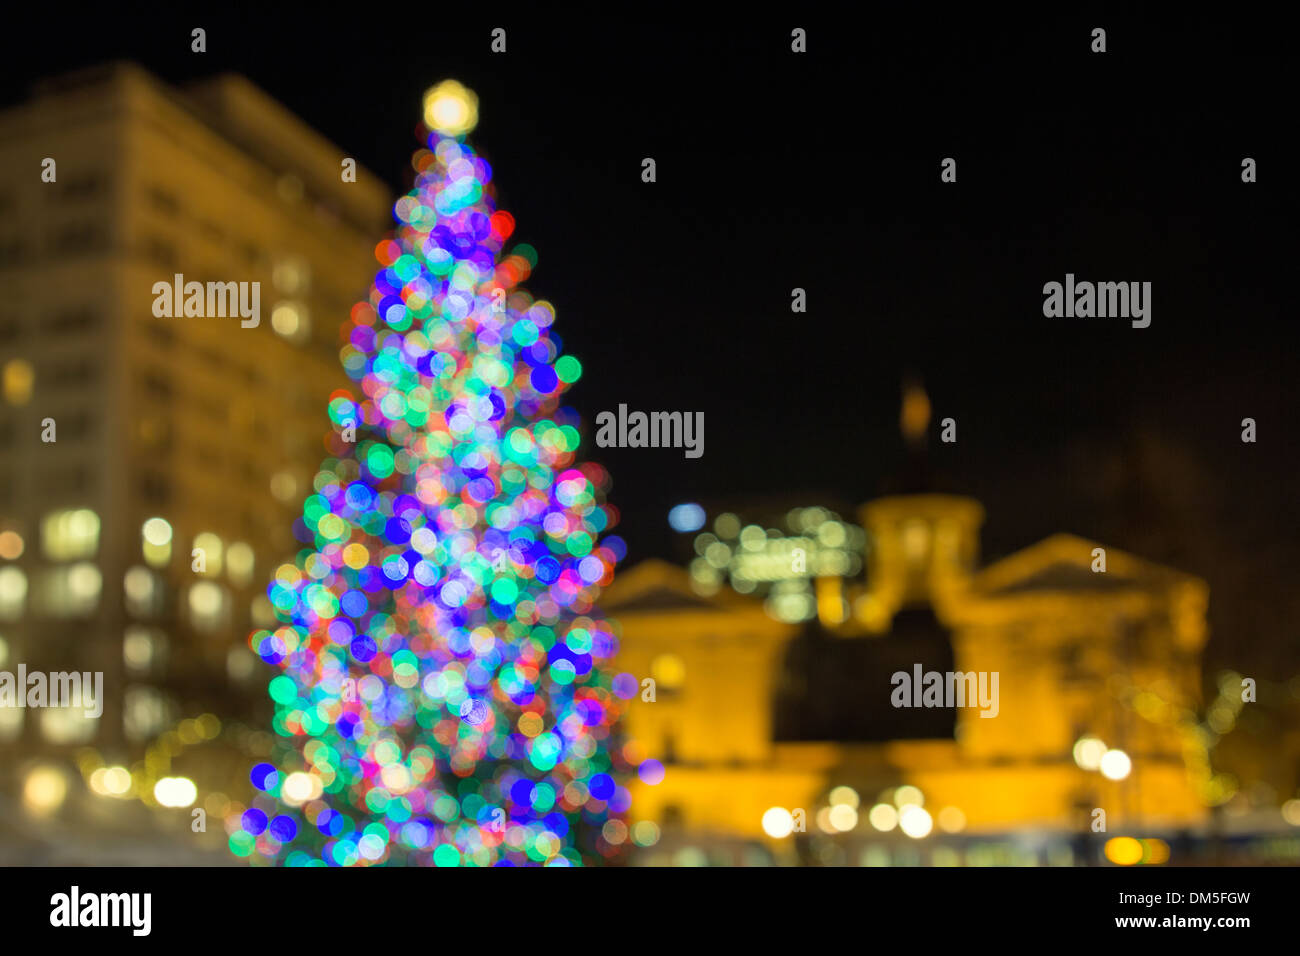 Christmas Holiday Tree with Festive Colorful Out of Focus Bokeh Lights  in Pioneer Courthouse Square Stock Photo